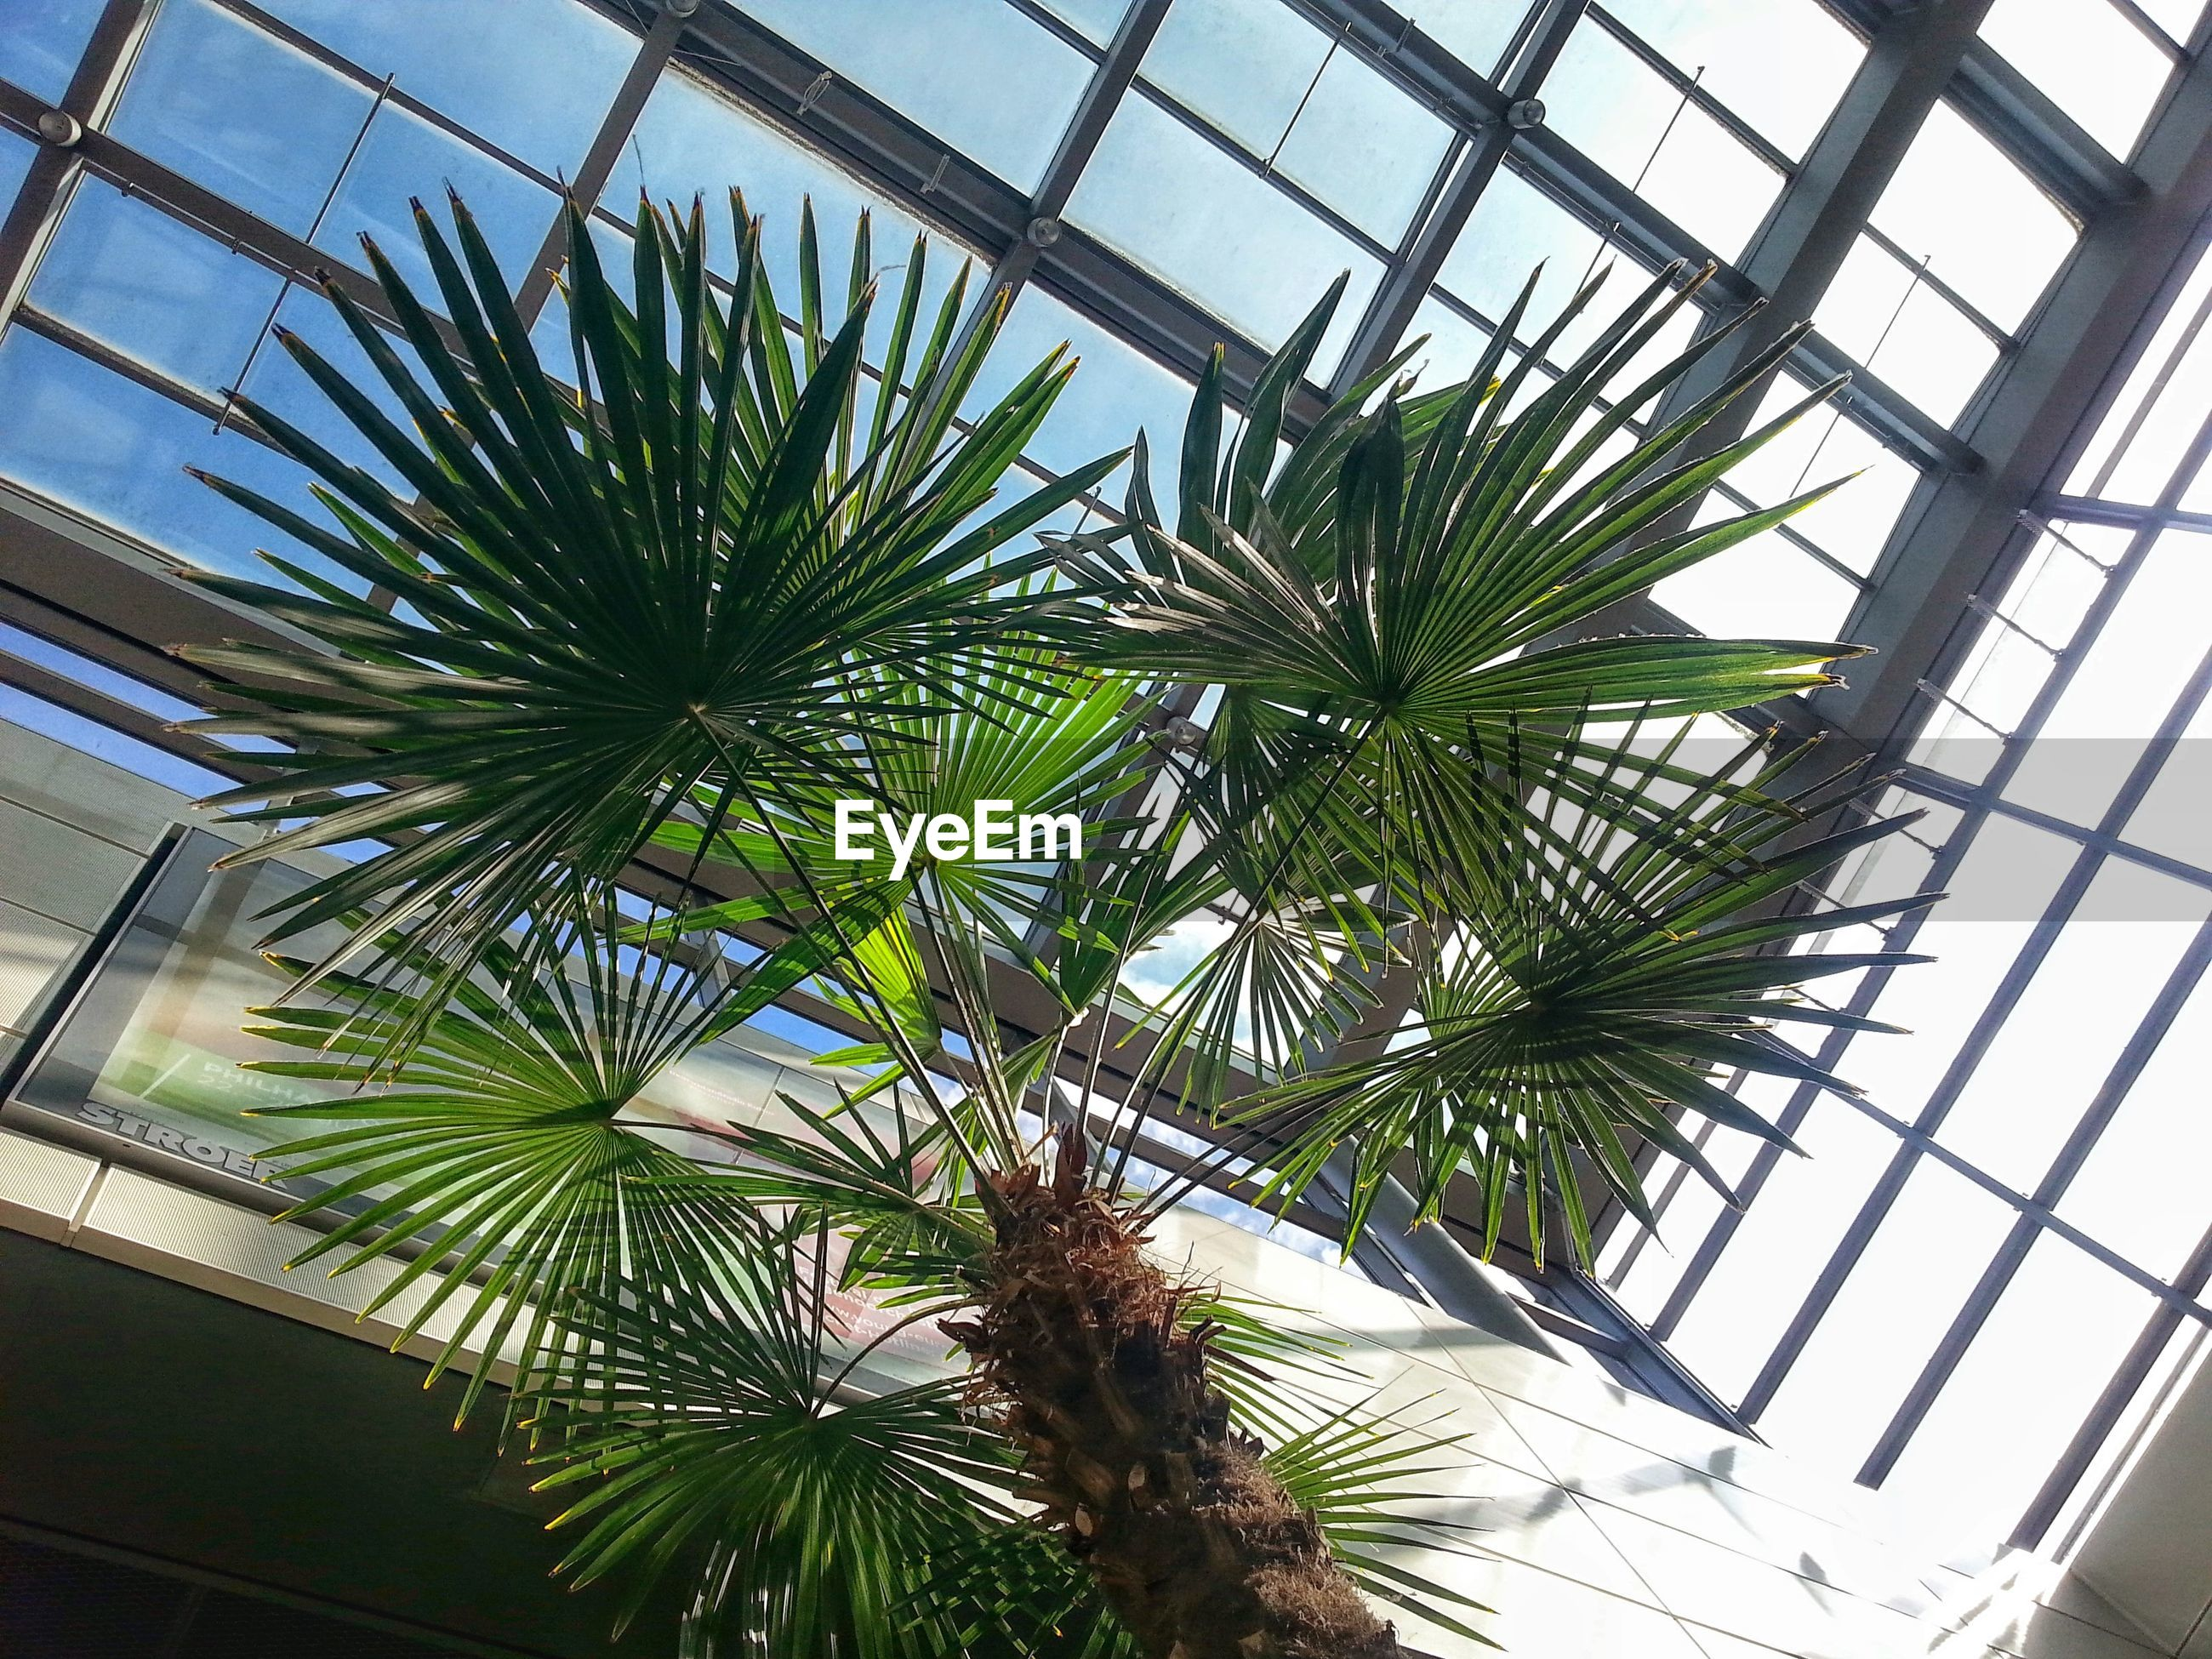 Low angle view of palm tree against skylight